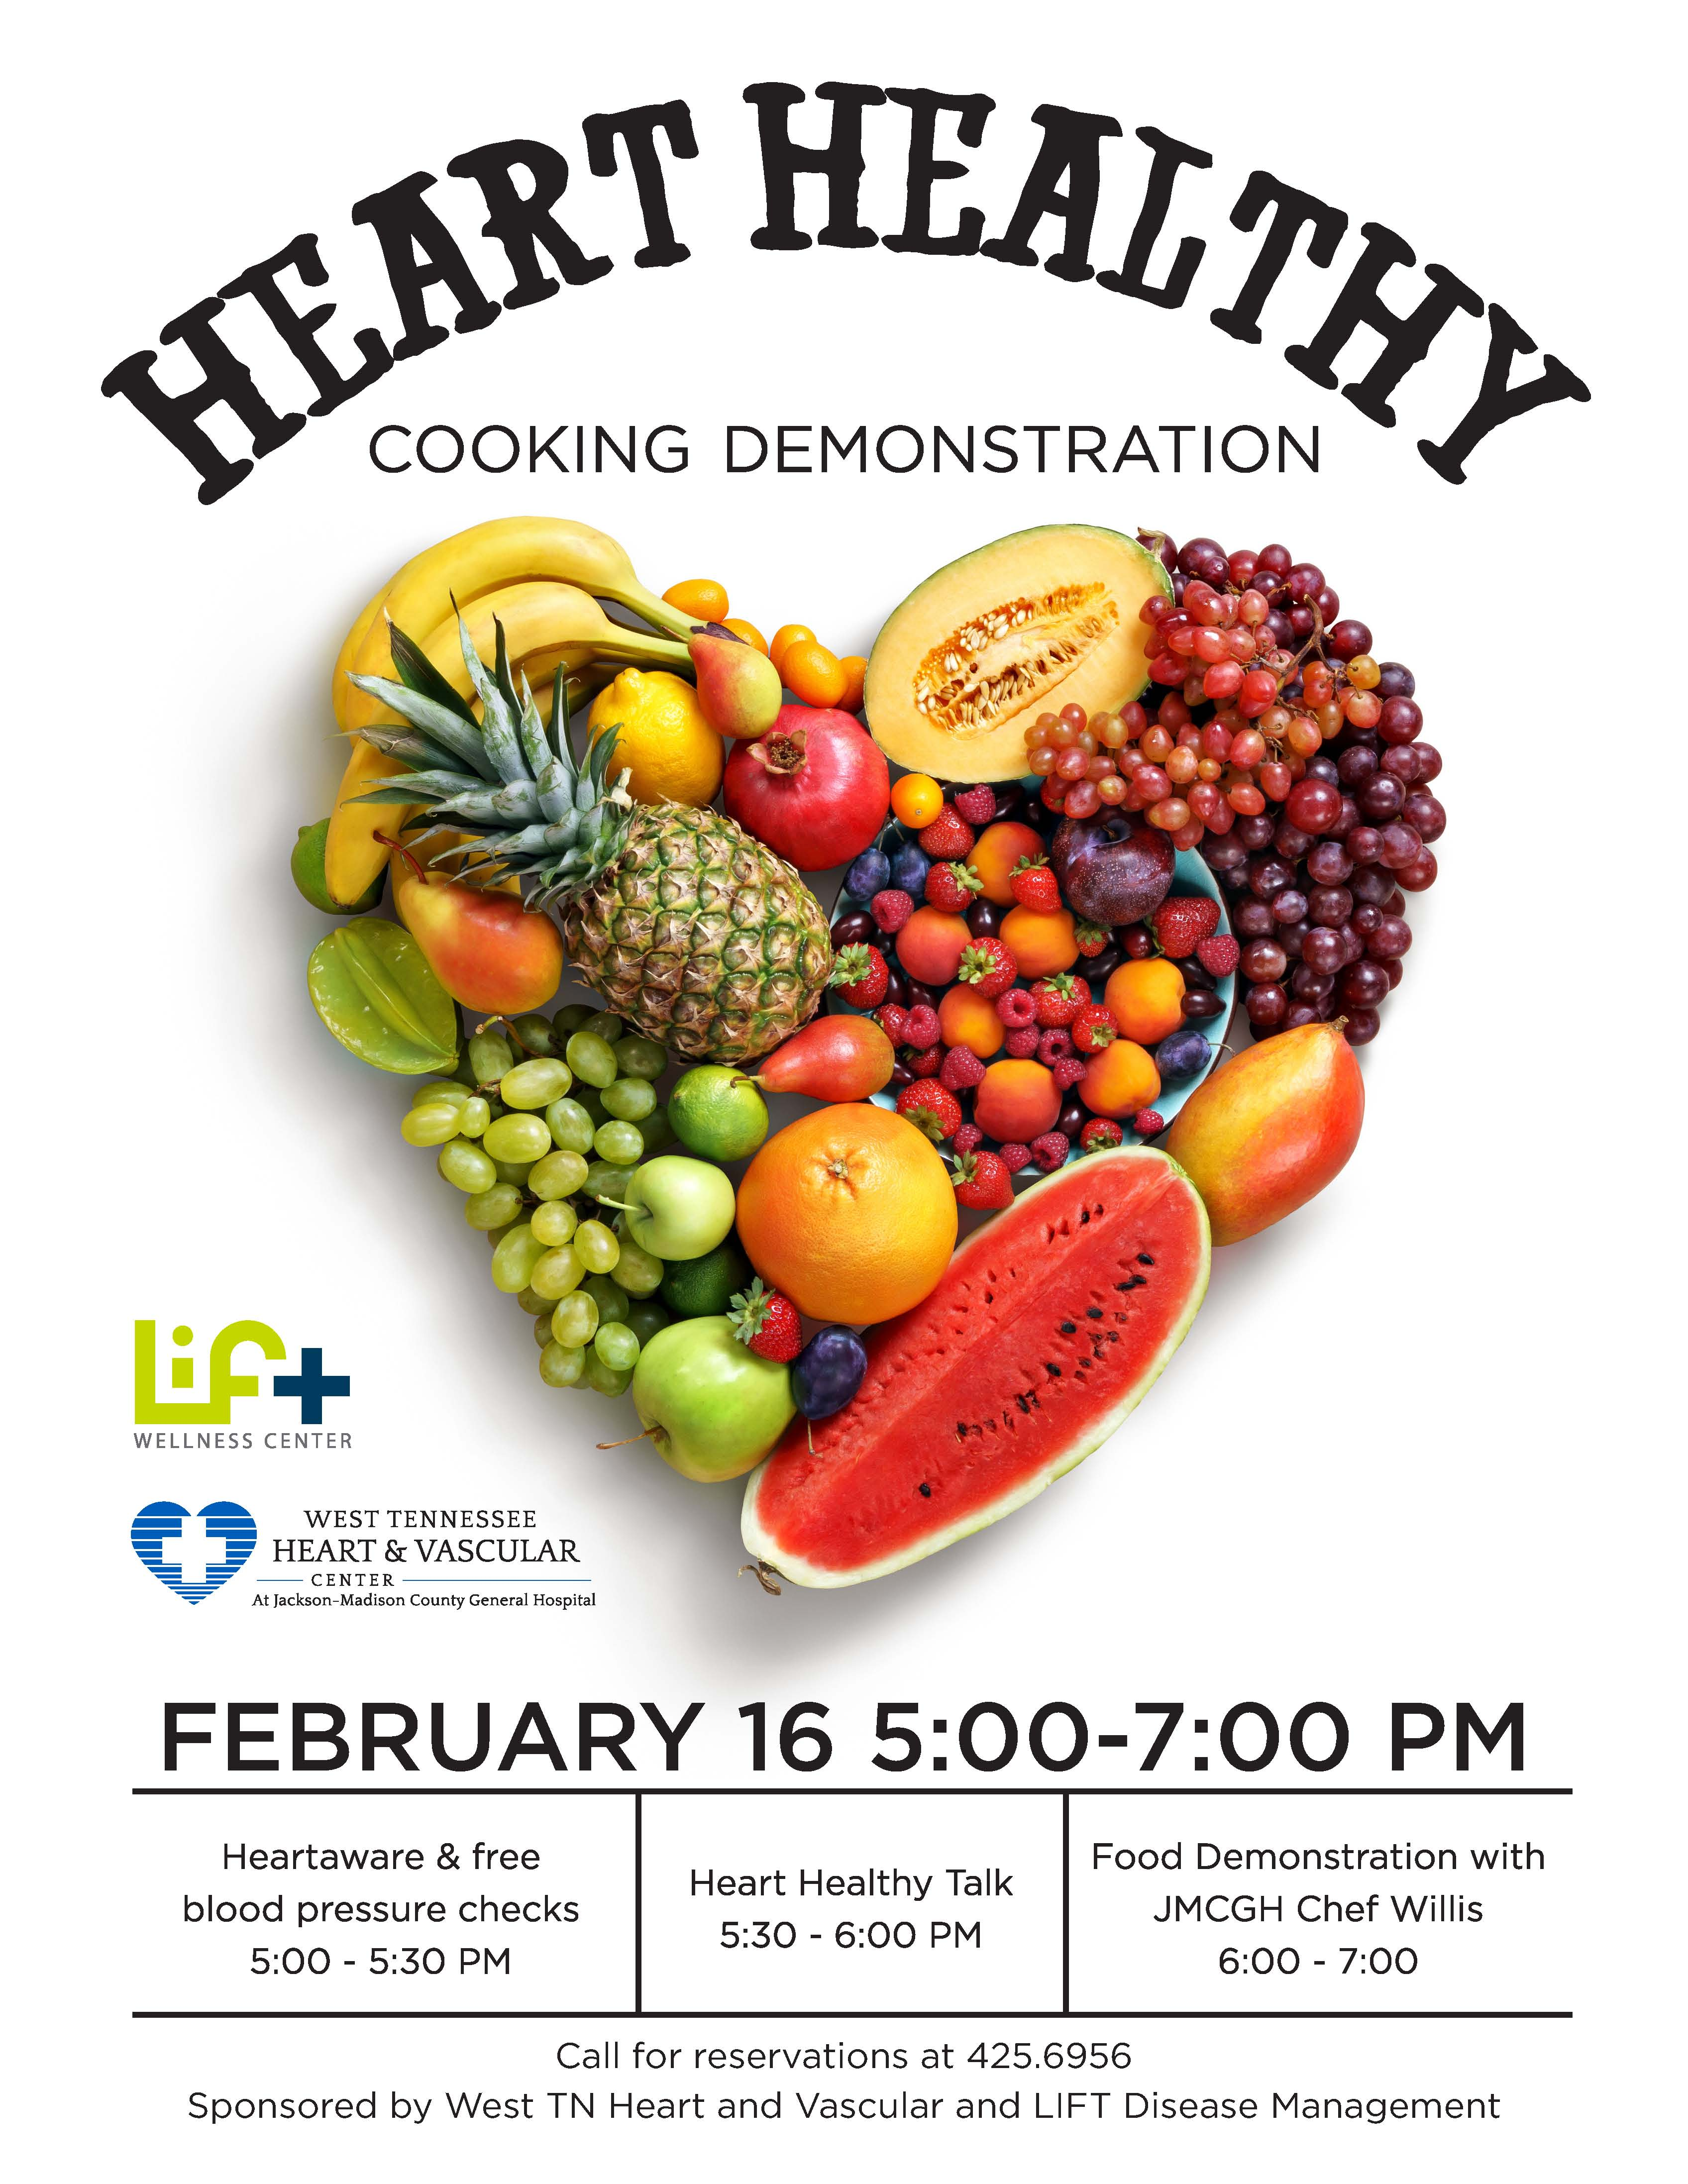 Heart Healthy Food Demo - The LIFT